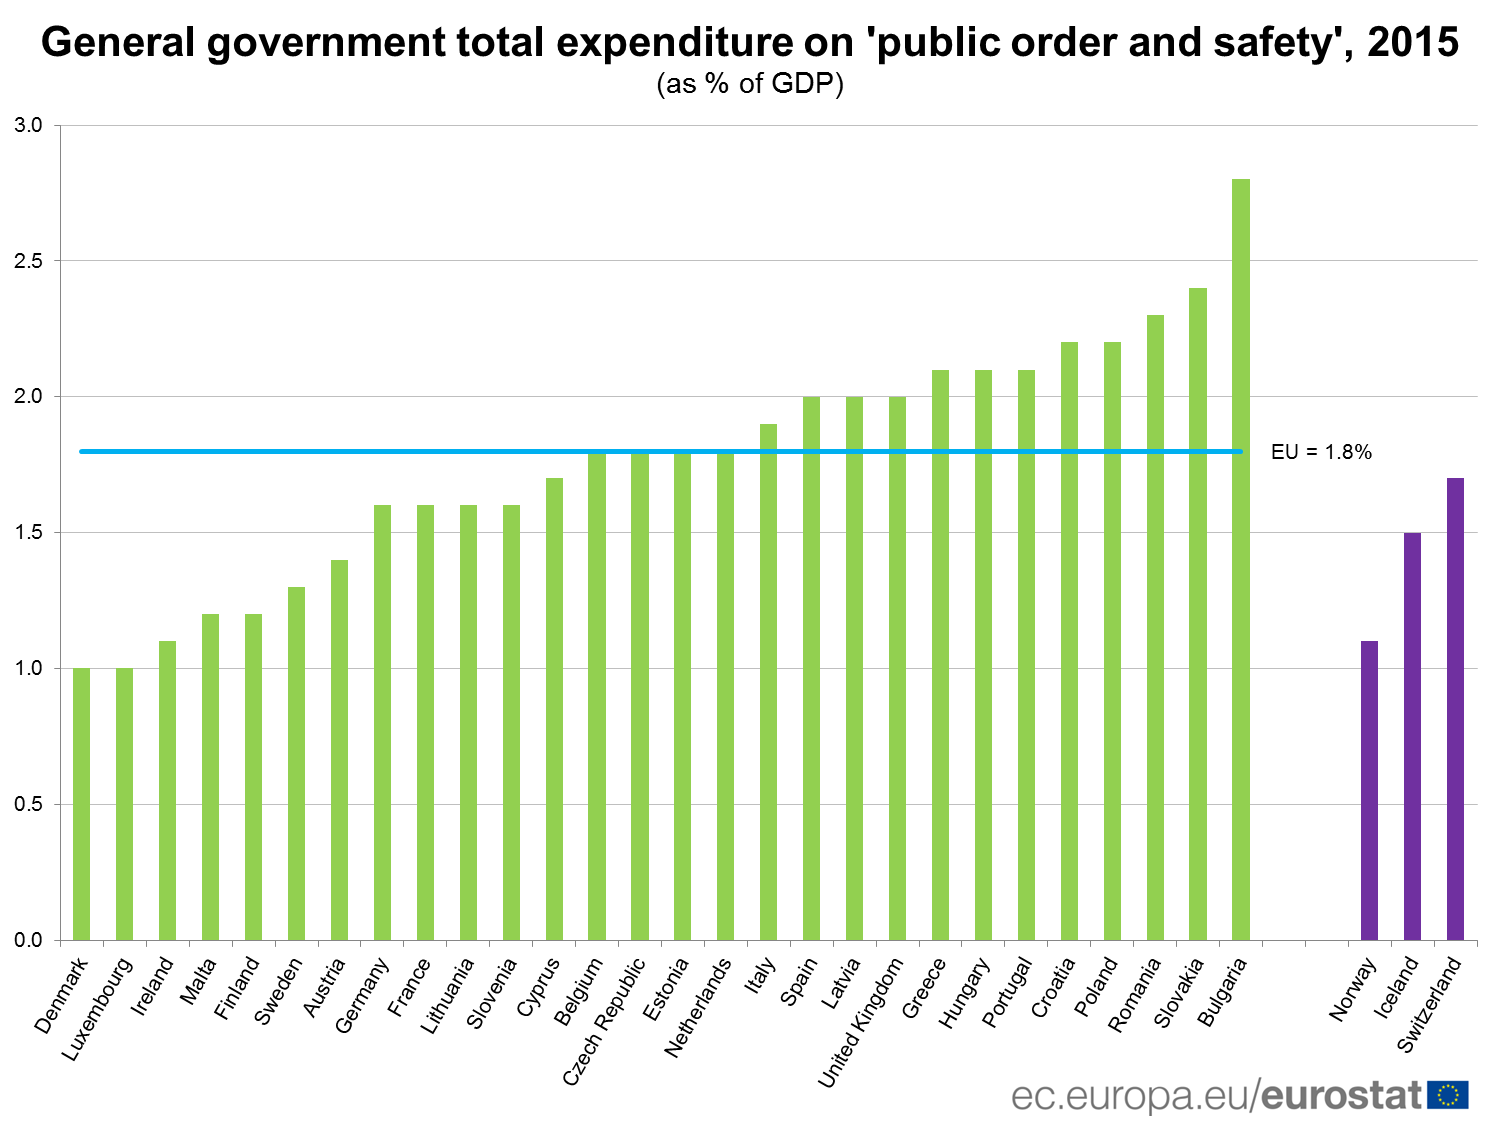 General government expenditure on public order and safety, 2015